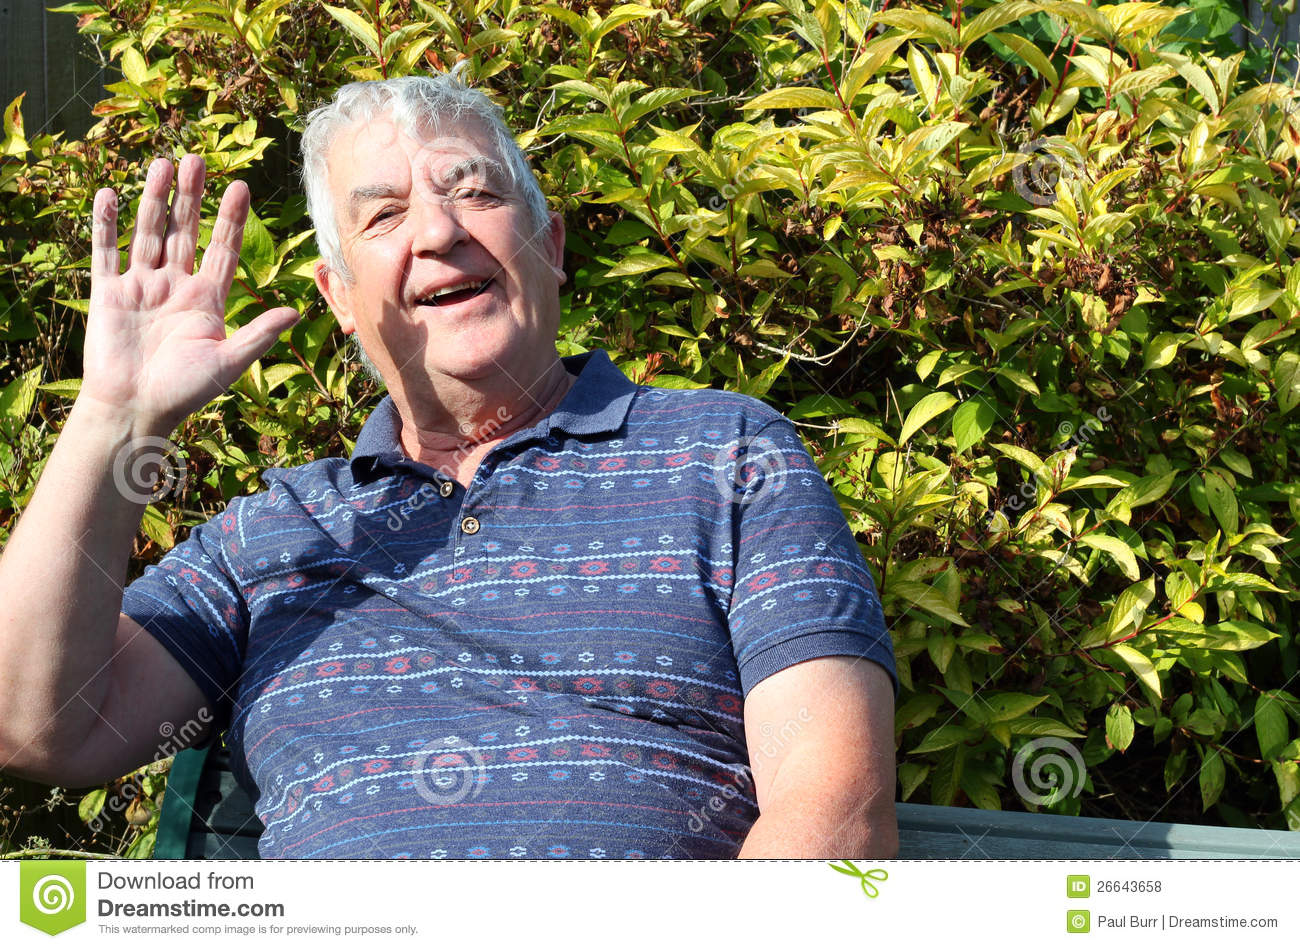 kneeling chair design plans chairs for kids with adhd royalty free stock photos: happy elderly man waving. image: 26643658